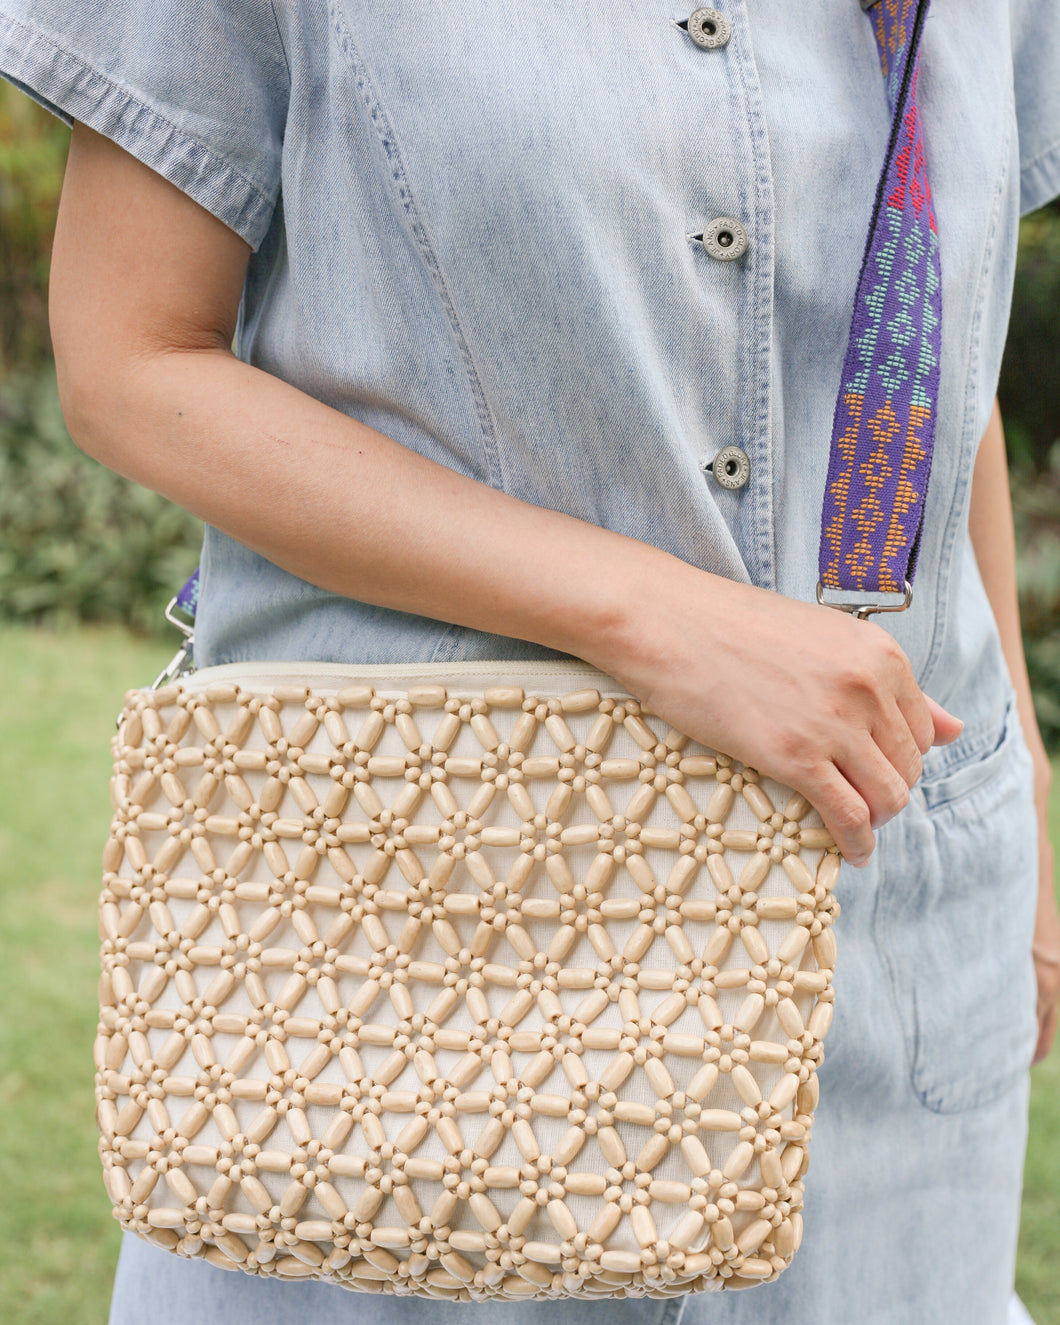 Habi Lifestyle Sinta Beaded Bag Amelia Maxi with Langkit